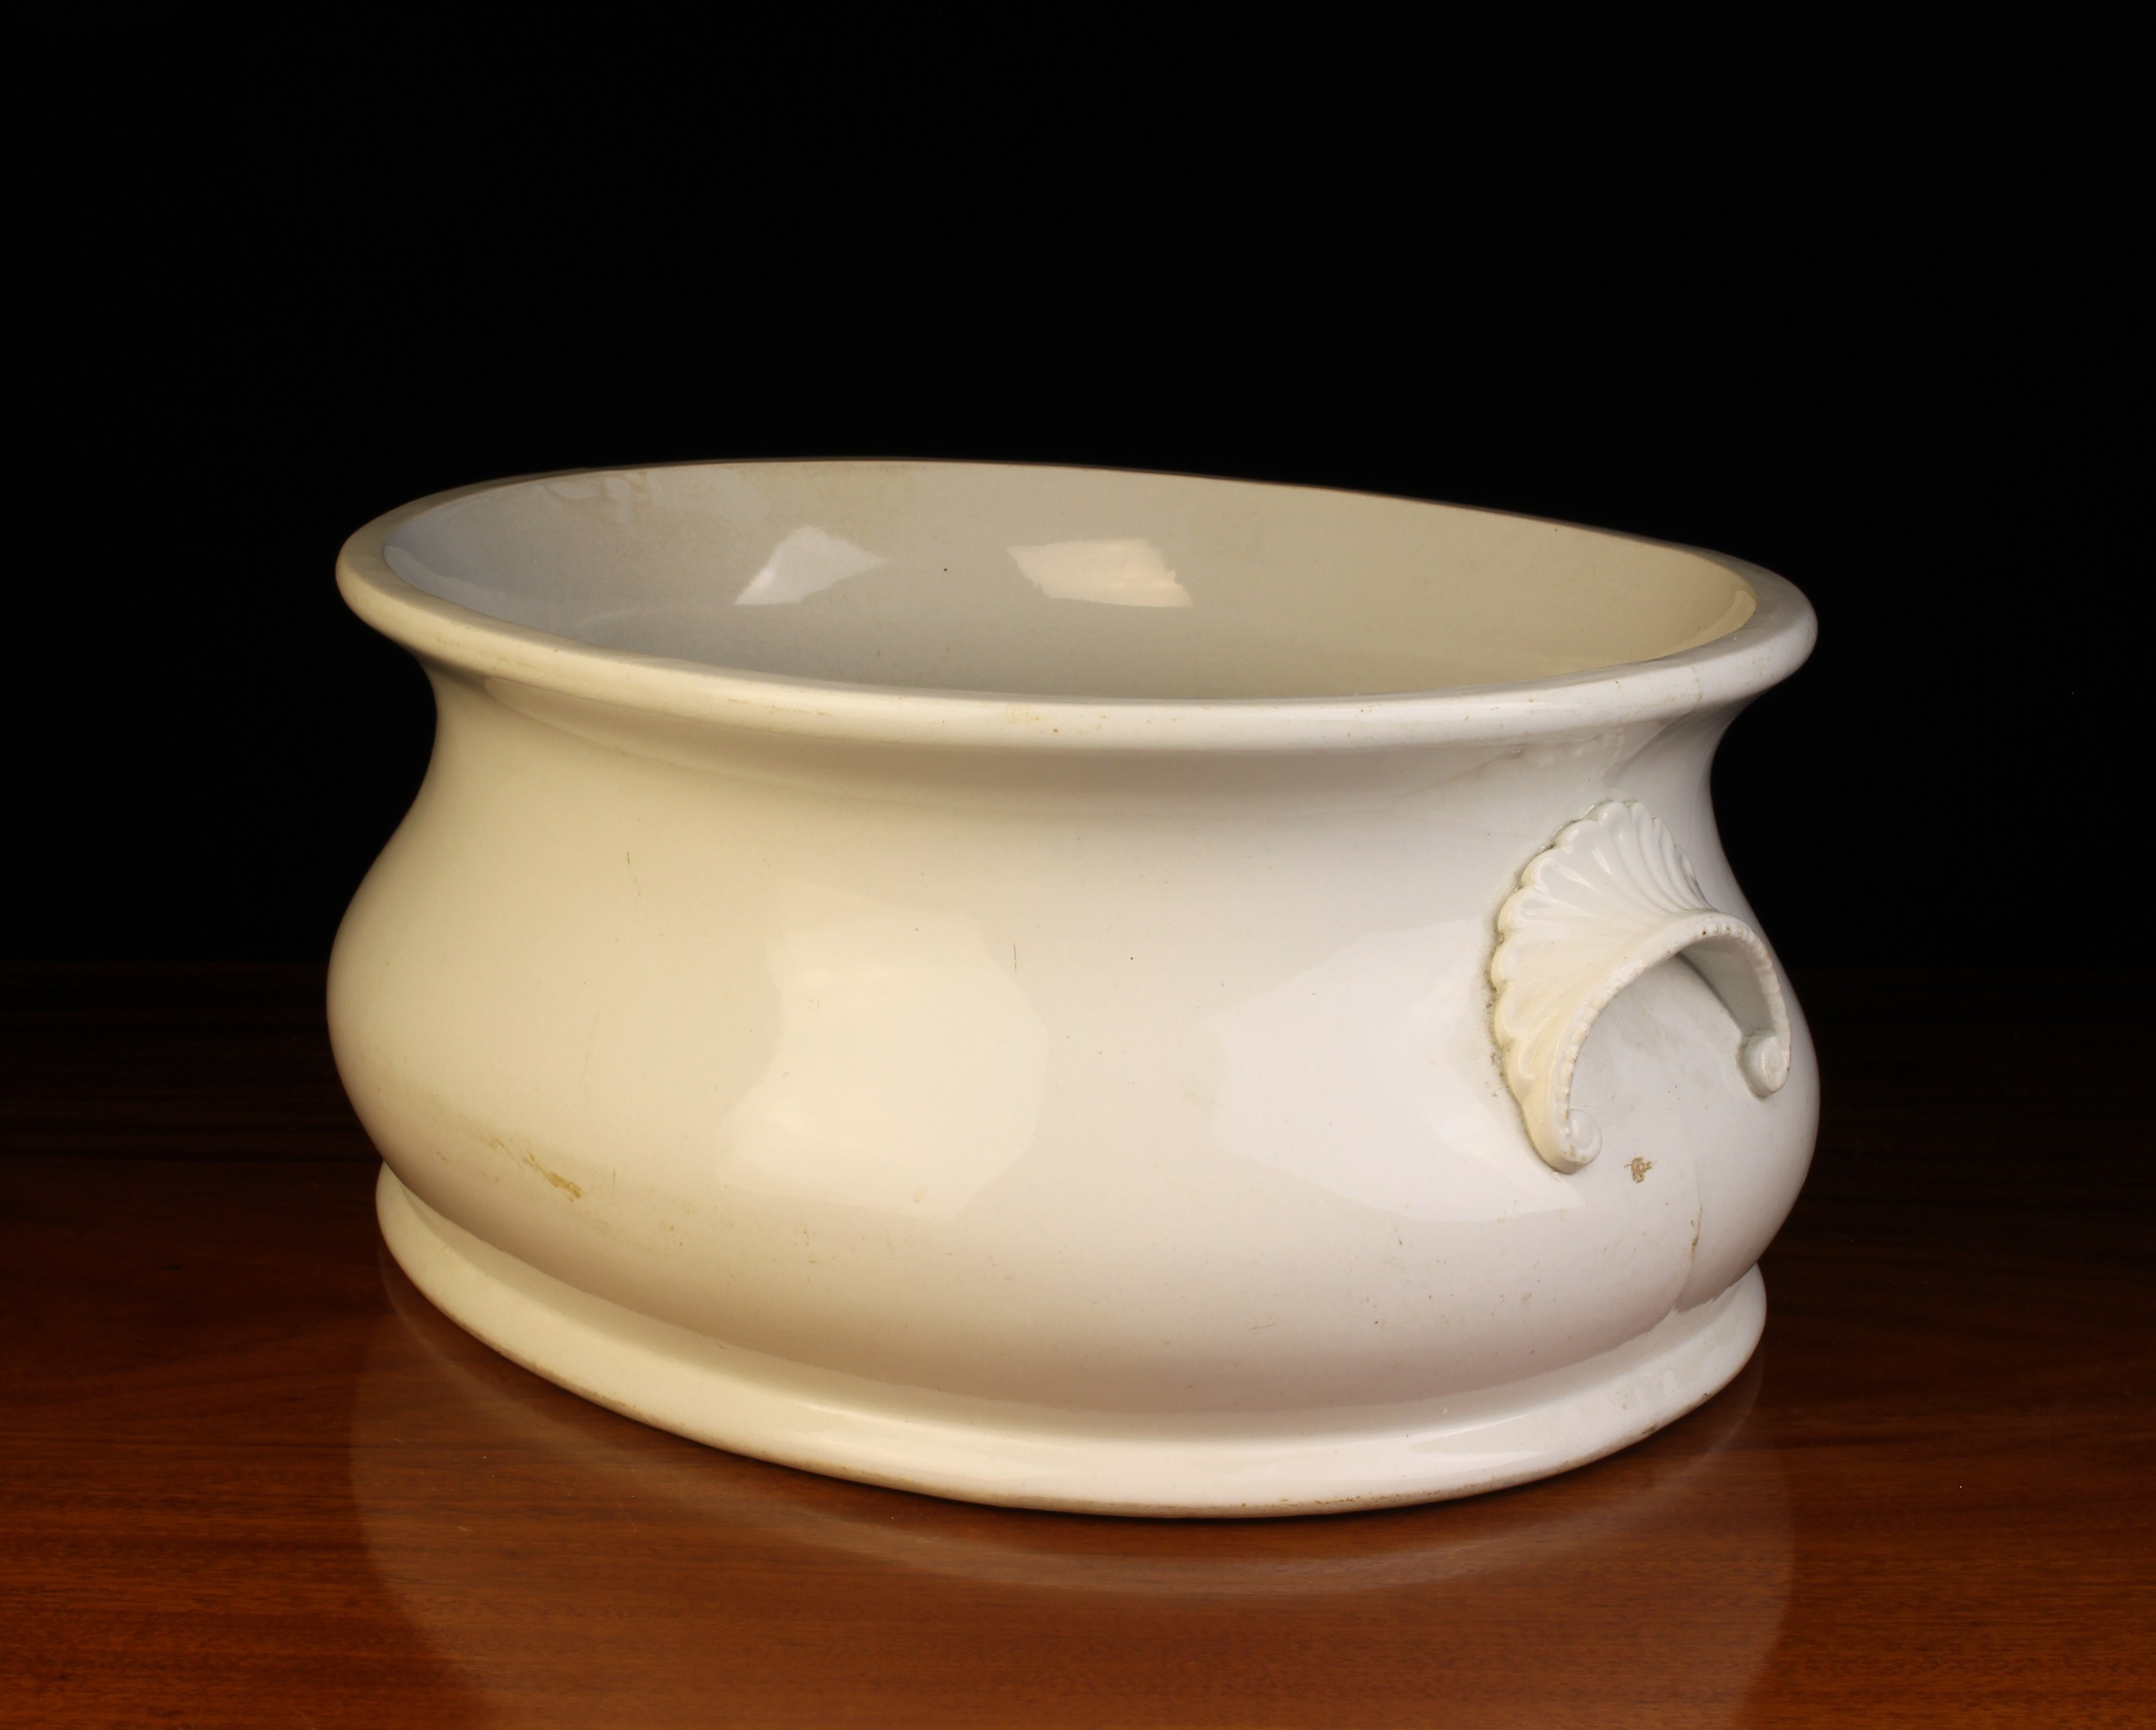 A 19th Century White Glazed Belleek Pottery Foot Bath with decorative moulded lip handles either - Image 3 of 3